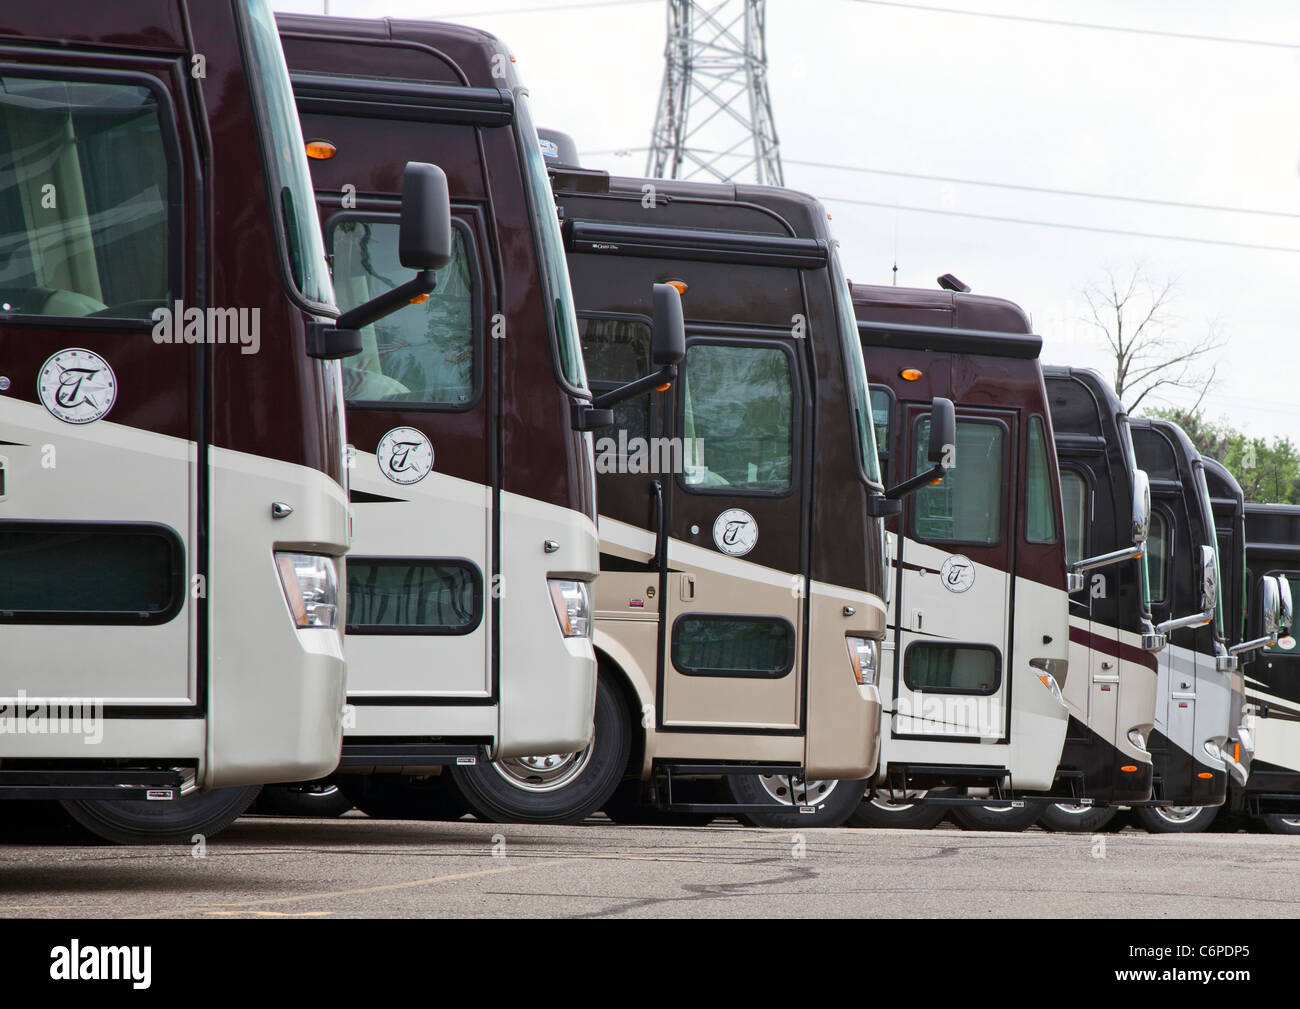 Wixom, Michigan - Luxury recreational vehicles on sale at an RV ...